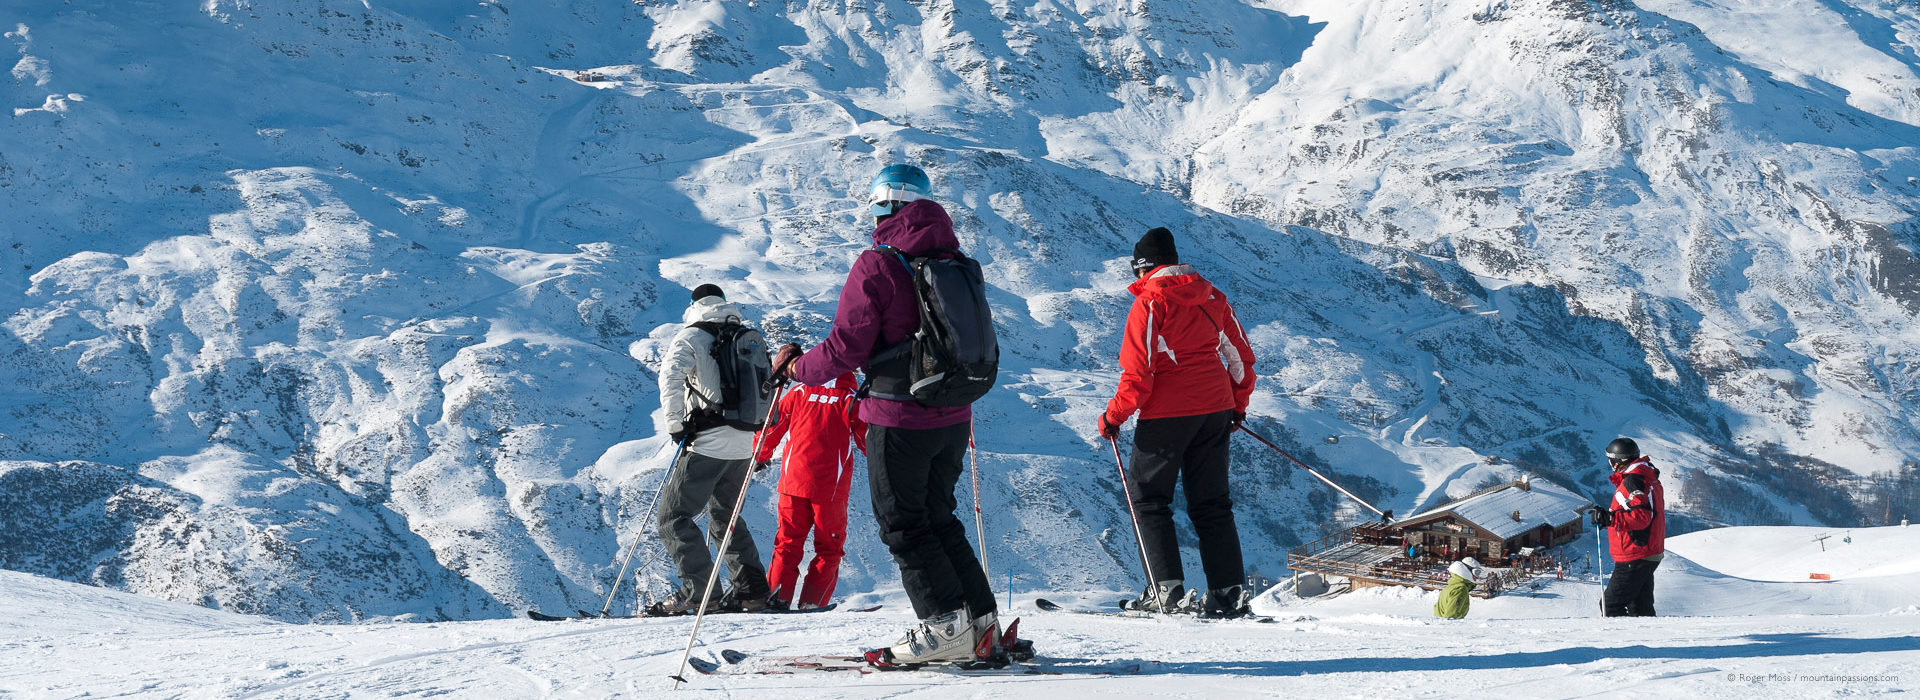 Group of skiers above mountain restaurant with snowy background.